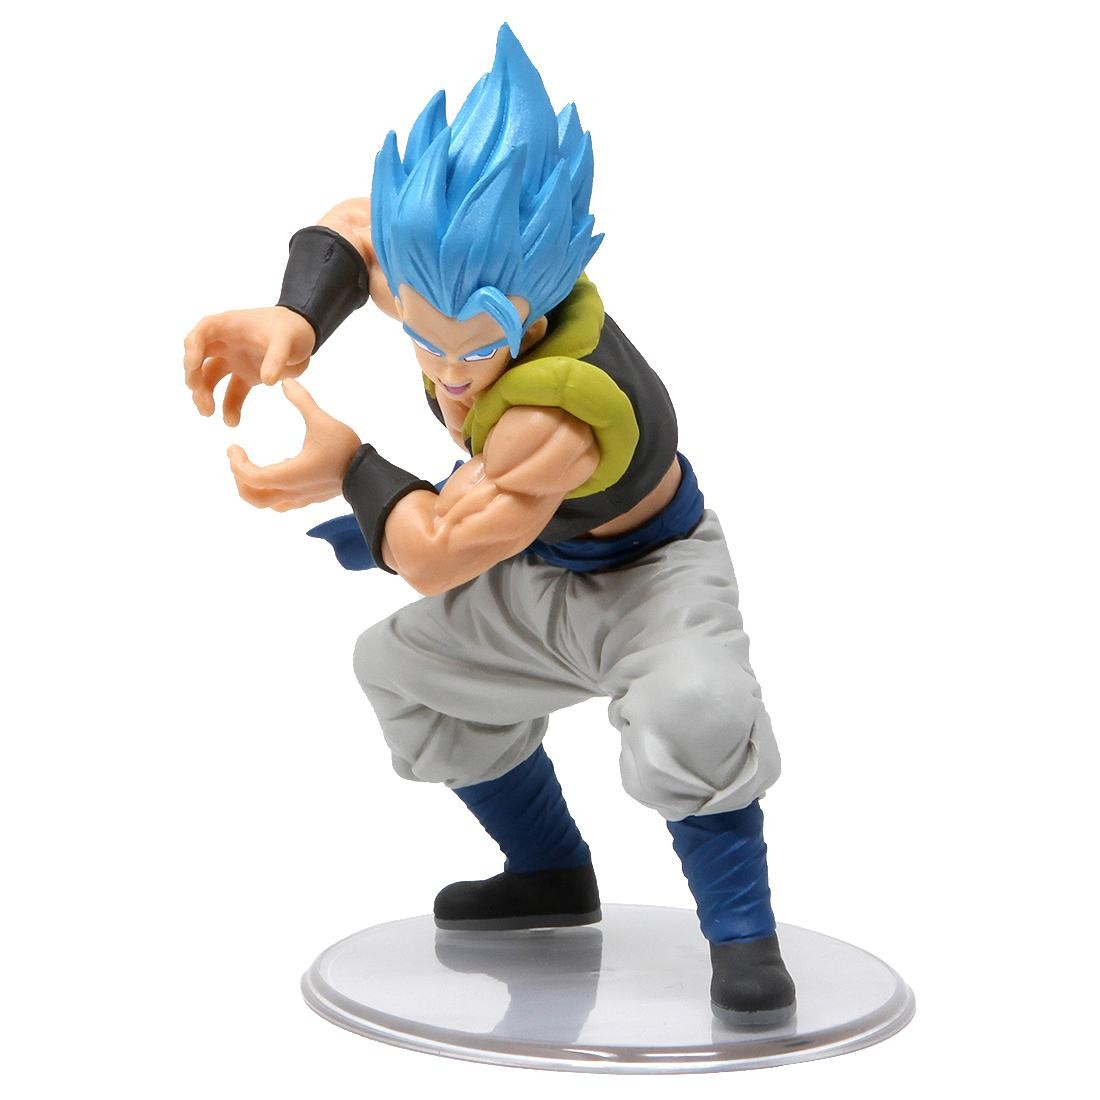 Bandai Dragon Ball Styling Vol. 6 Super Saiyan God Gogeta Figure (blue)